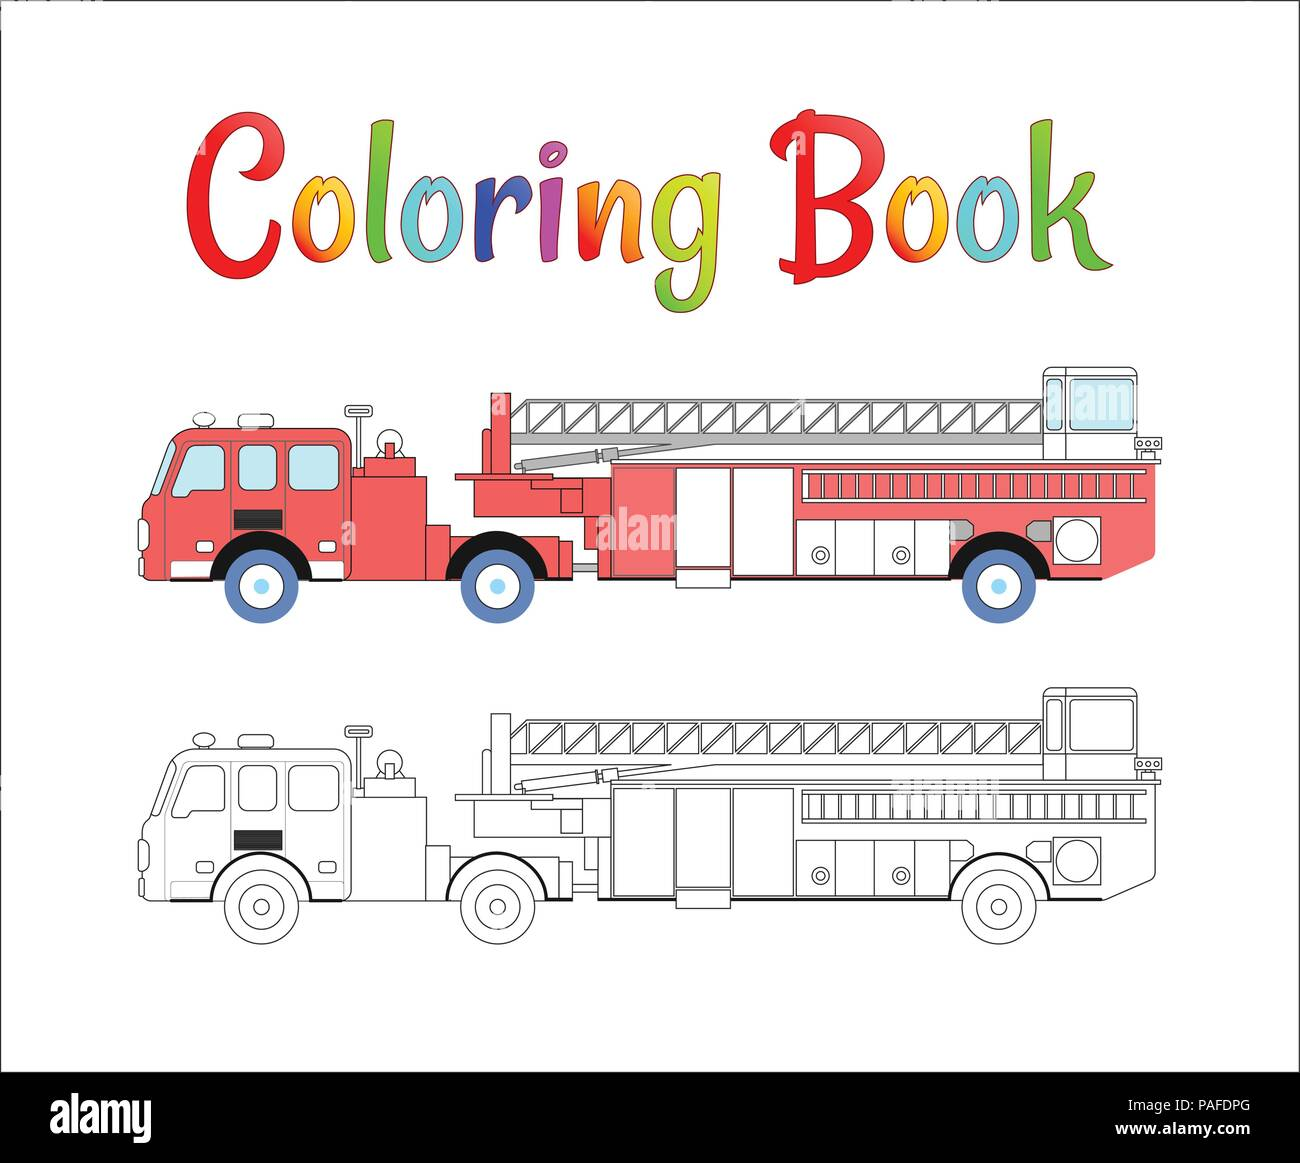 Fire Truck Coloring Book Vector Coloring Pages For Kids Vector Illustration Eps 10 Stock Vector Image Art Alamy